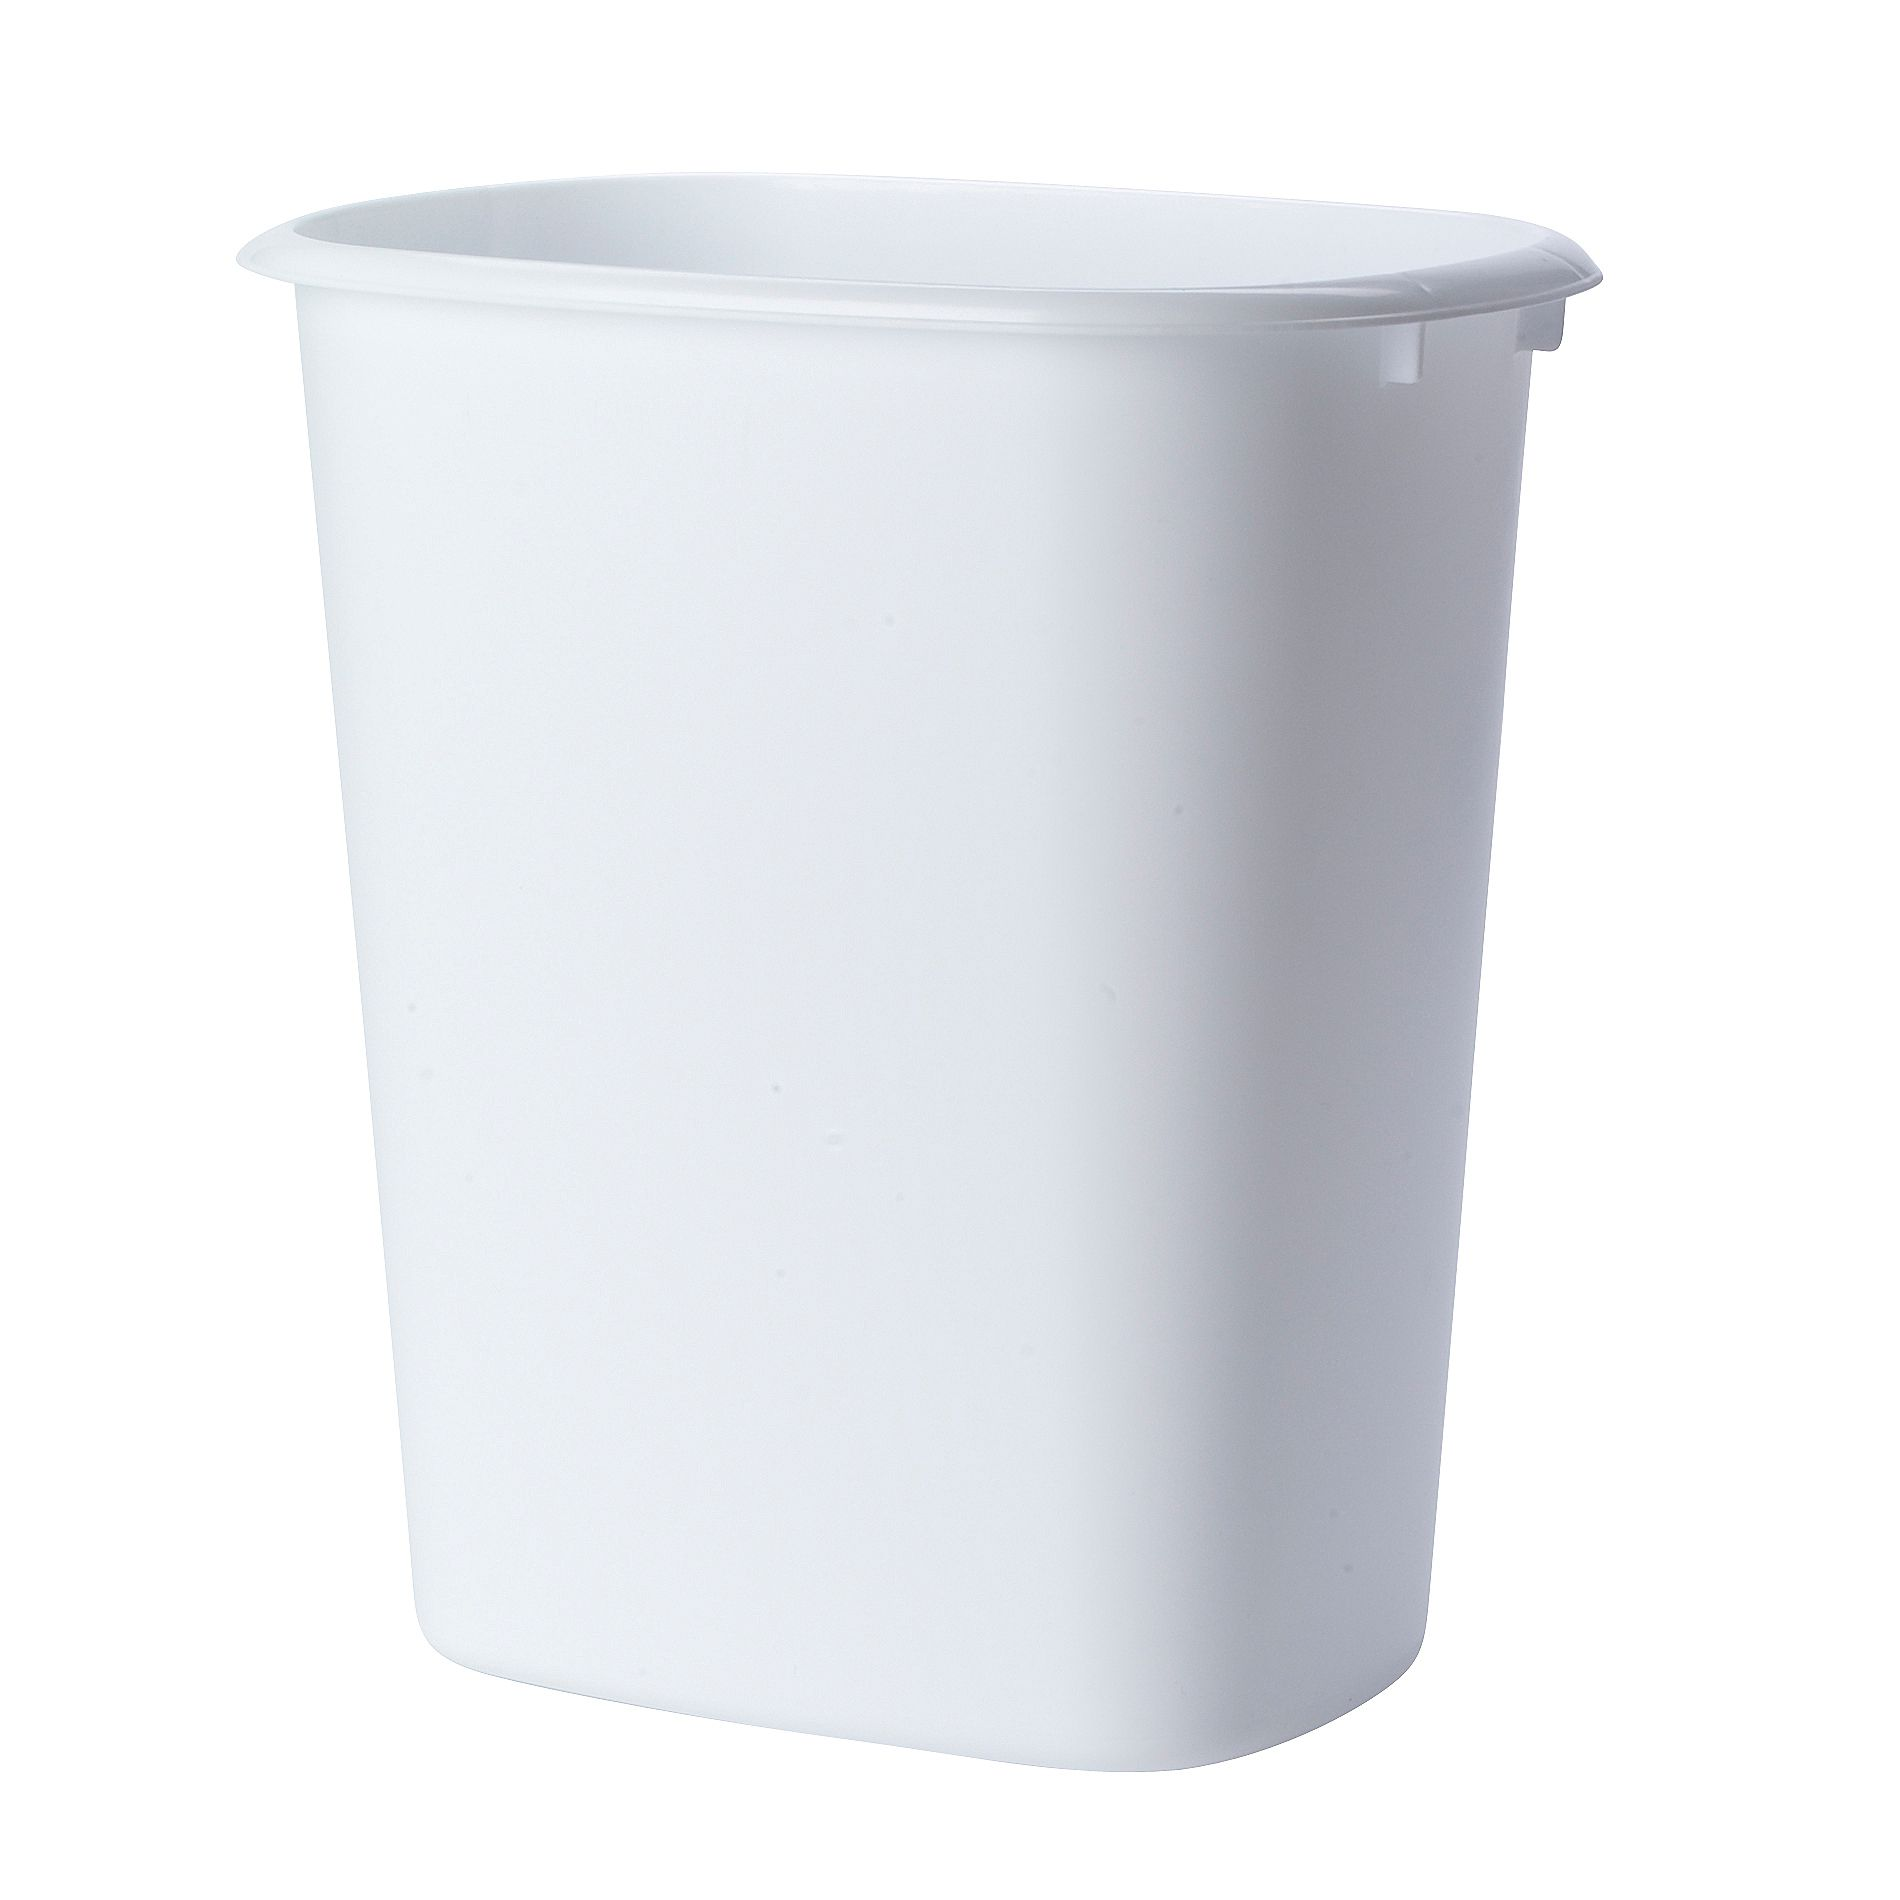 white kitchen trash can eat at island united solutions wastebasket 10 qts